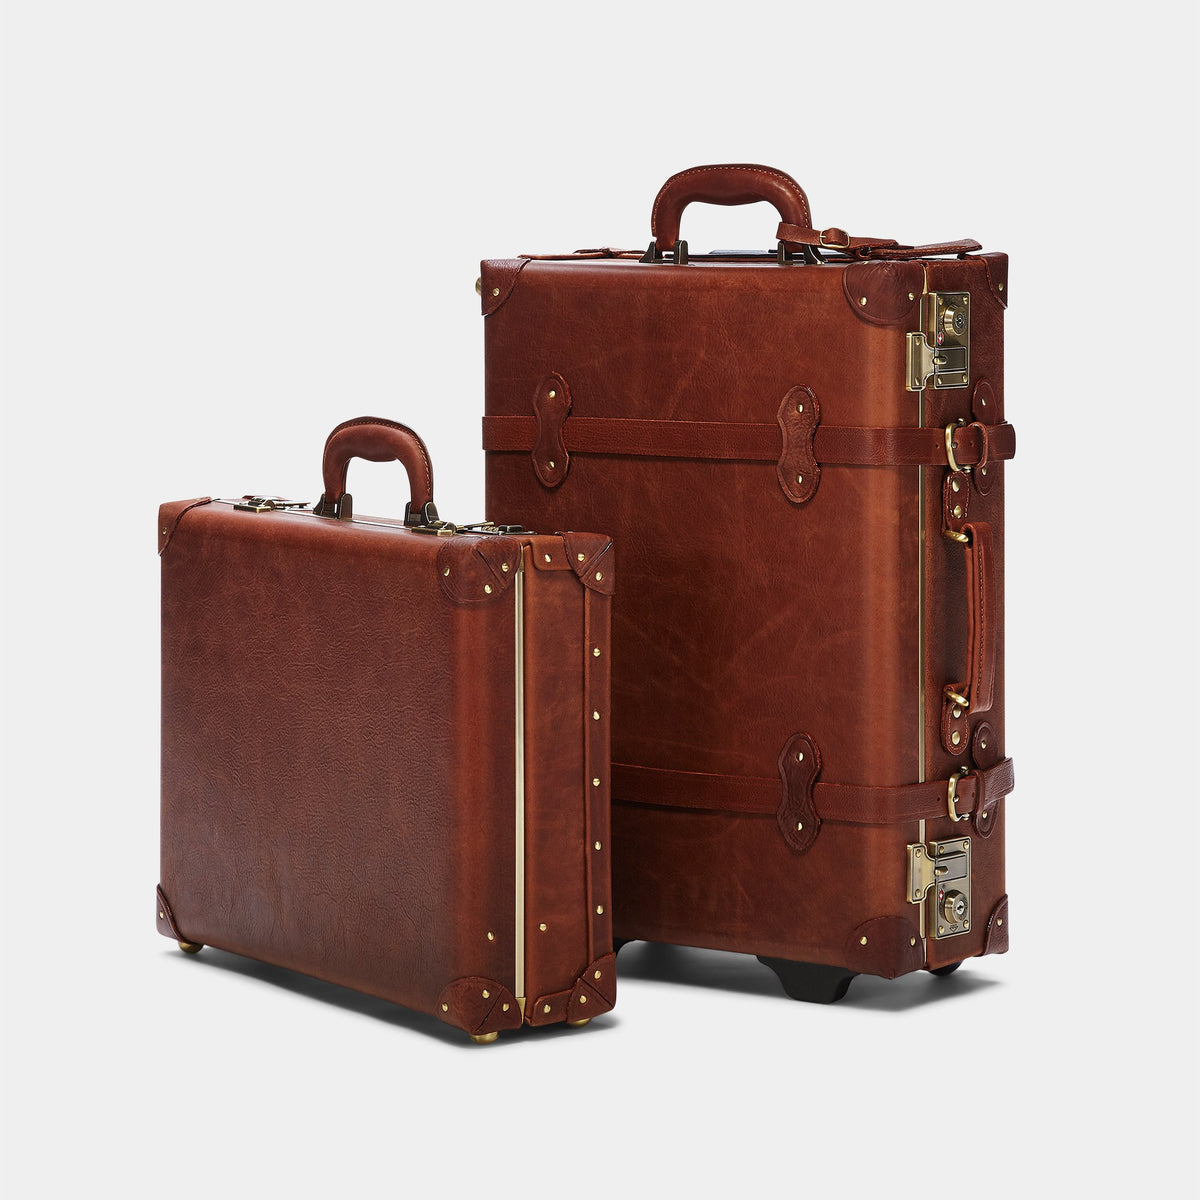 The Pioneer Carryon - Vintage Style leather suitcase - Alongside the matching Pioneer Briefcase